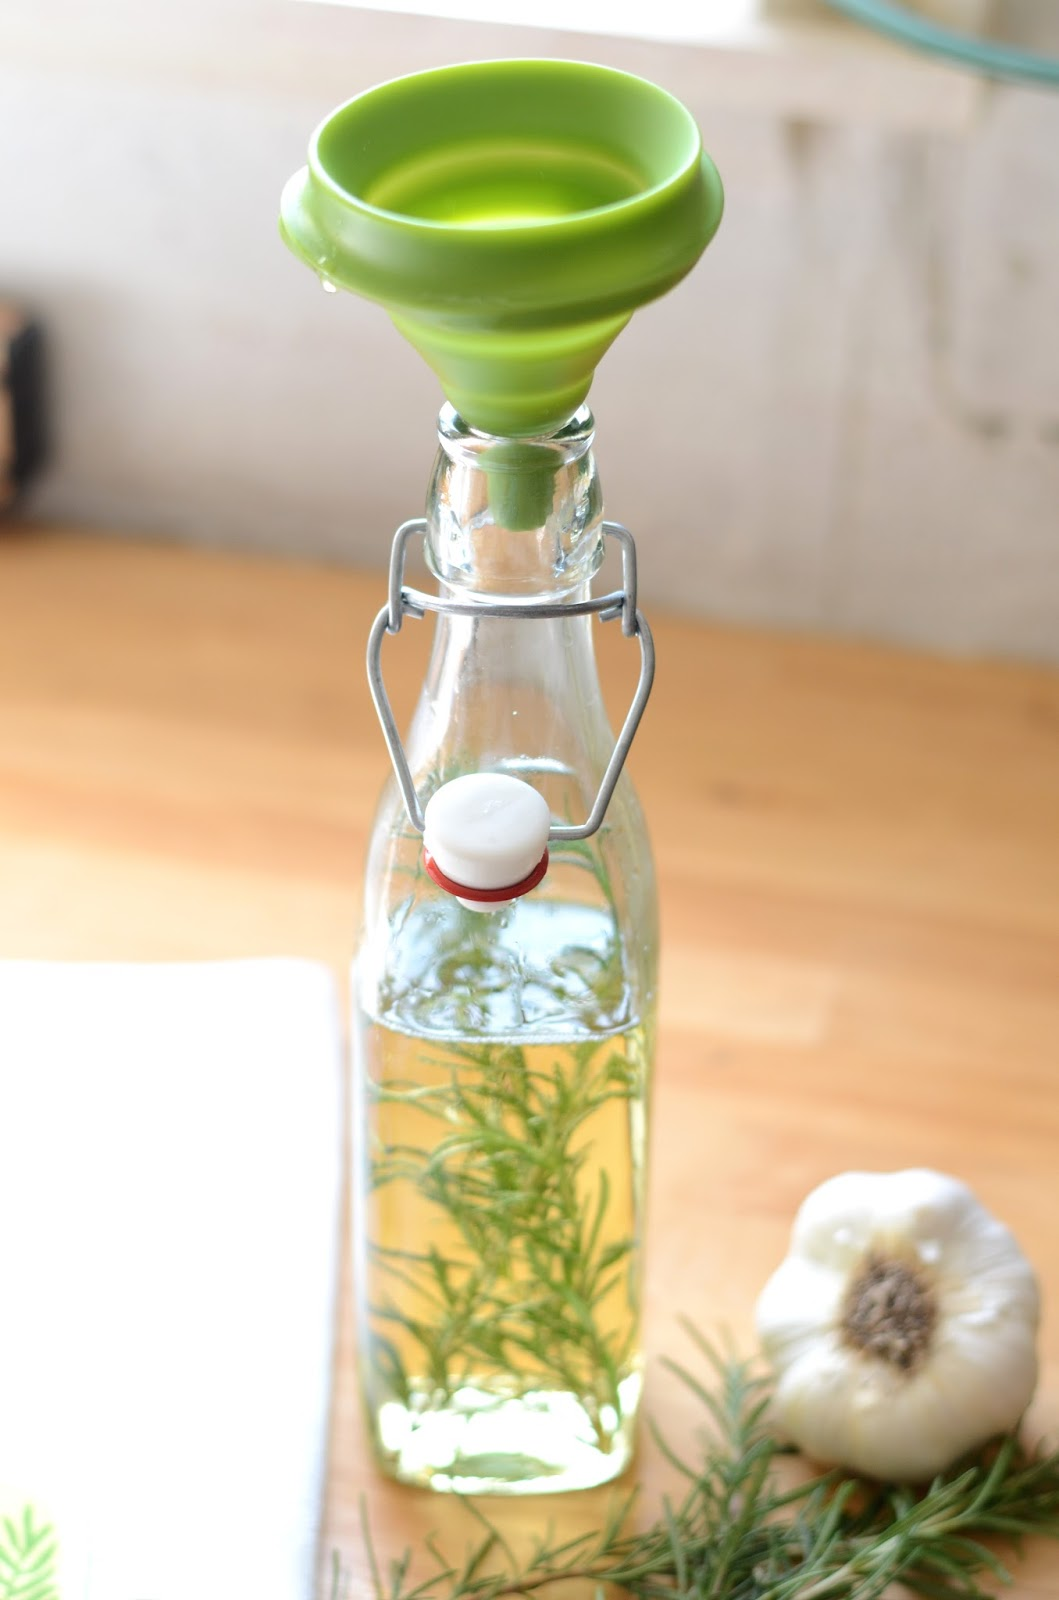 Recipe+Rosemary+Garlic+Infused+Olive+Oil,+herb+infused+DIY+(4).JPG